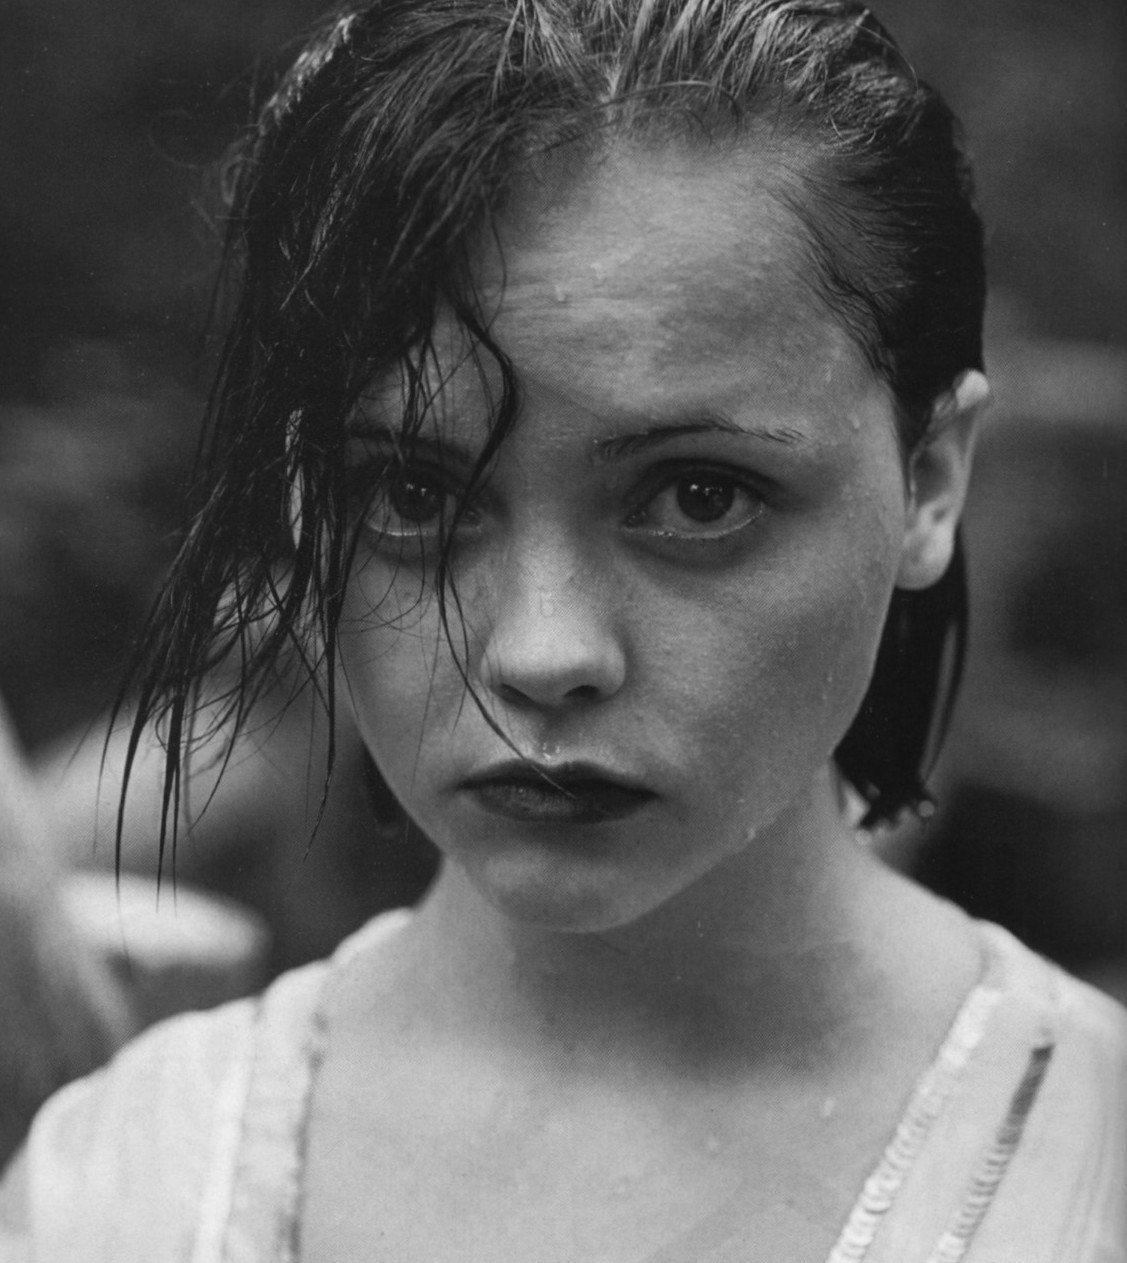 Christina Ricci poses for a black and white photoshoot